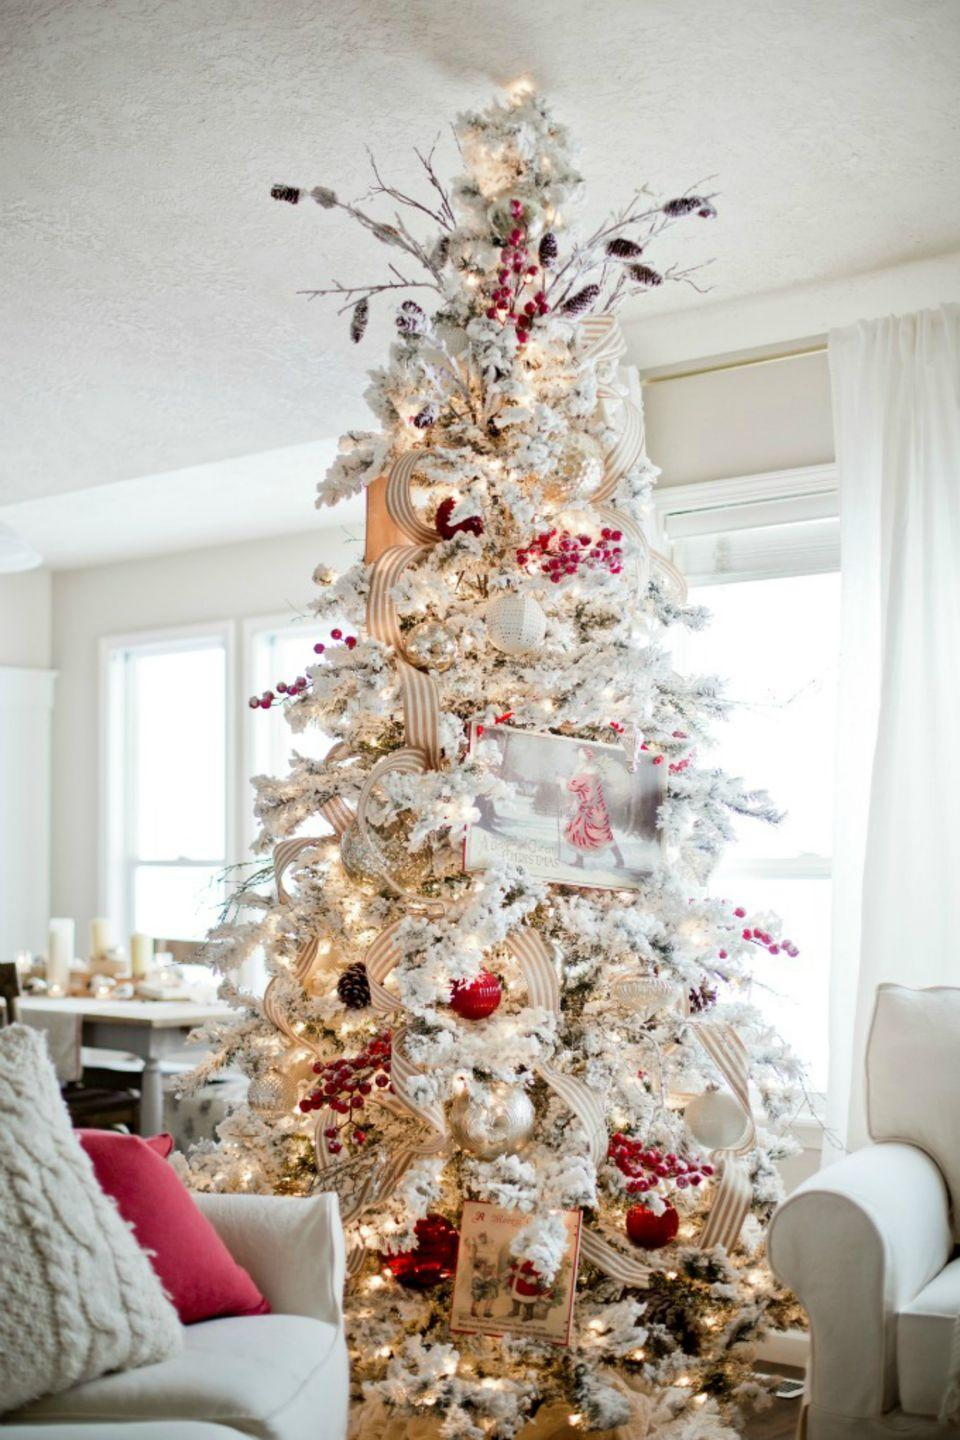 """<p>To achieve this magical snow-dusted effect, sprinkle your tree with snow flock. Add some soft holiday touches with frosted berry picks, red and white glass ornaments and burlap ribbon.</p><p><em><strong>Get the tutorial at </strong><strong><a href=""""http://www.ellaclaireinspired.com/how-to-decorate-a-christmas-tree/"""" rel=""""nofollow noopener"""" target=""""_blank"""" data-ylk=""""slk:Ella Claire & Co."""" class=""""link rapid-noclick-resp"""">Ella Claire & Co.</a></strong></em></p><p><span class=""""redactor-invisible-space""""><a class=""""link rapid-noclick-resp"""" href=""""https://www.amazon.com/SnoWonder-Instant-Snow-Artificial-Gallons/dp/B00KVO8CSC?tag=syn-yahoo-20&ascsubtag=%5Bartid%7C10070.g.2025%5Bsrc%7Cyahoo-us"""" rel=""""nofollow noopener"""" target=""""_blank"""" data-ylk=""""slk:BUY ARTIFICIAL SNOW"""">BUY ARTIFICIAL SNOW</a></span><br></p><p><strong>_______________________________________________________</strong><strong>__</strong></p><p><em>Want to make your holidays shine? You're in luck! <a href=""""https://subscribe.hearstmags.com/subscribe/womansday/253396?source=wdy_edit_article"""" rel=""""nofollow noopener"""" target=""""_blank"""" data-ylk=""""slk:Subscribe to Woman's Day"""" class=""""link rapid-noclick-resp"""">Subscribe to Woman's Day</a> today and get <strong>73% off your first 12 issues</strong>. And while you're at it, <a href=""""https://subscribe.hearstmags.com/circulation/shared/email/newsletters/signup/wdy-su01.html"""" rel=""""nofollow noopener"""" target=""""_blank"""" data-ylk=""""slk:sign up for our FREE newsletter"""" class=""""link rapid-noclick-resp"""">sign up for our FREE newsletter</a> for even more of the Woman's Day content you want.</em></p>"""